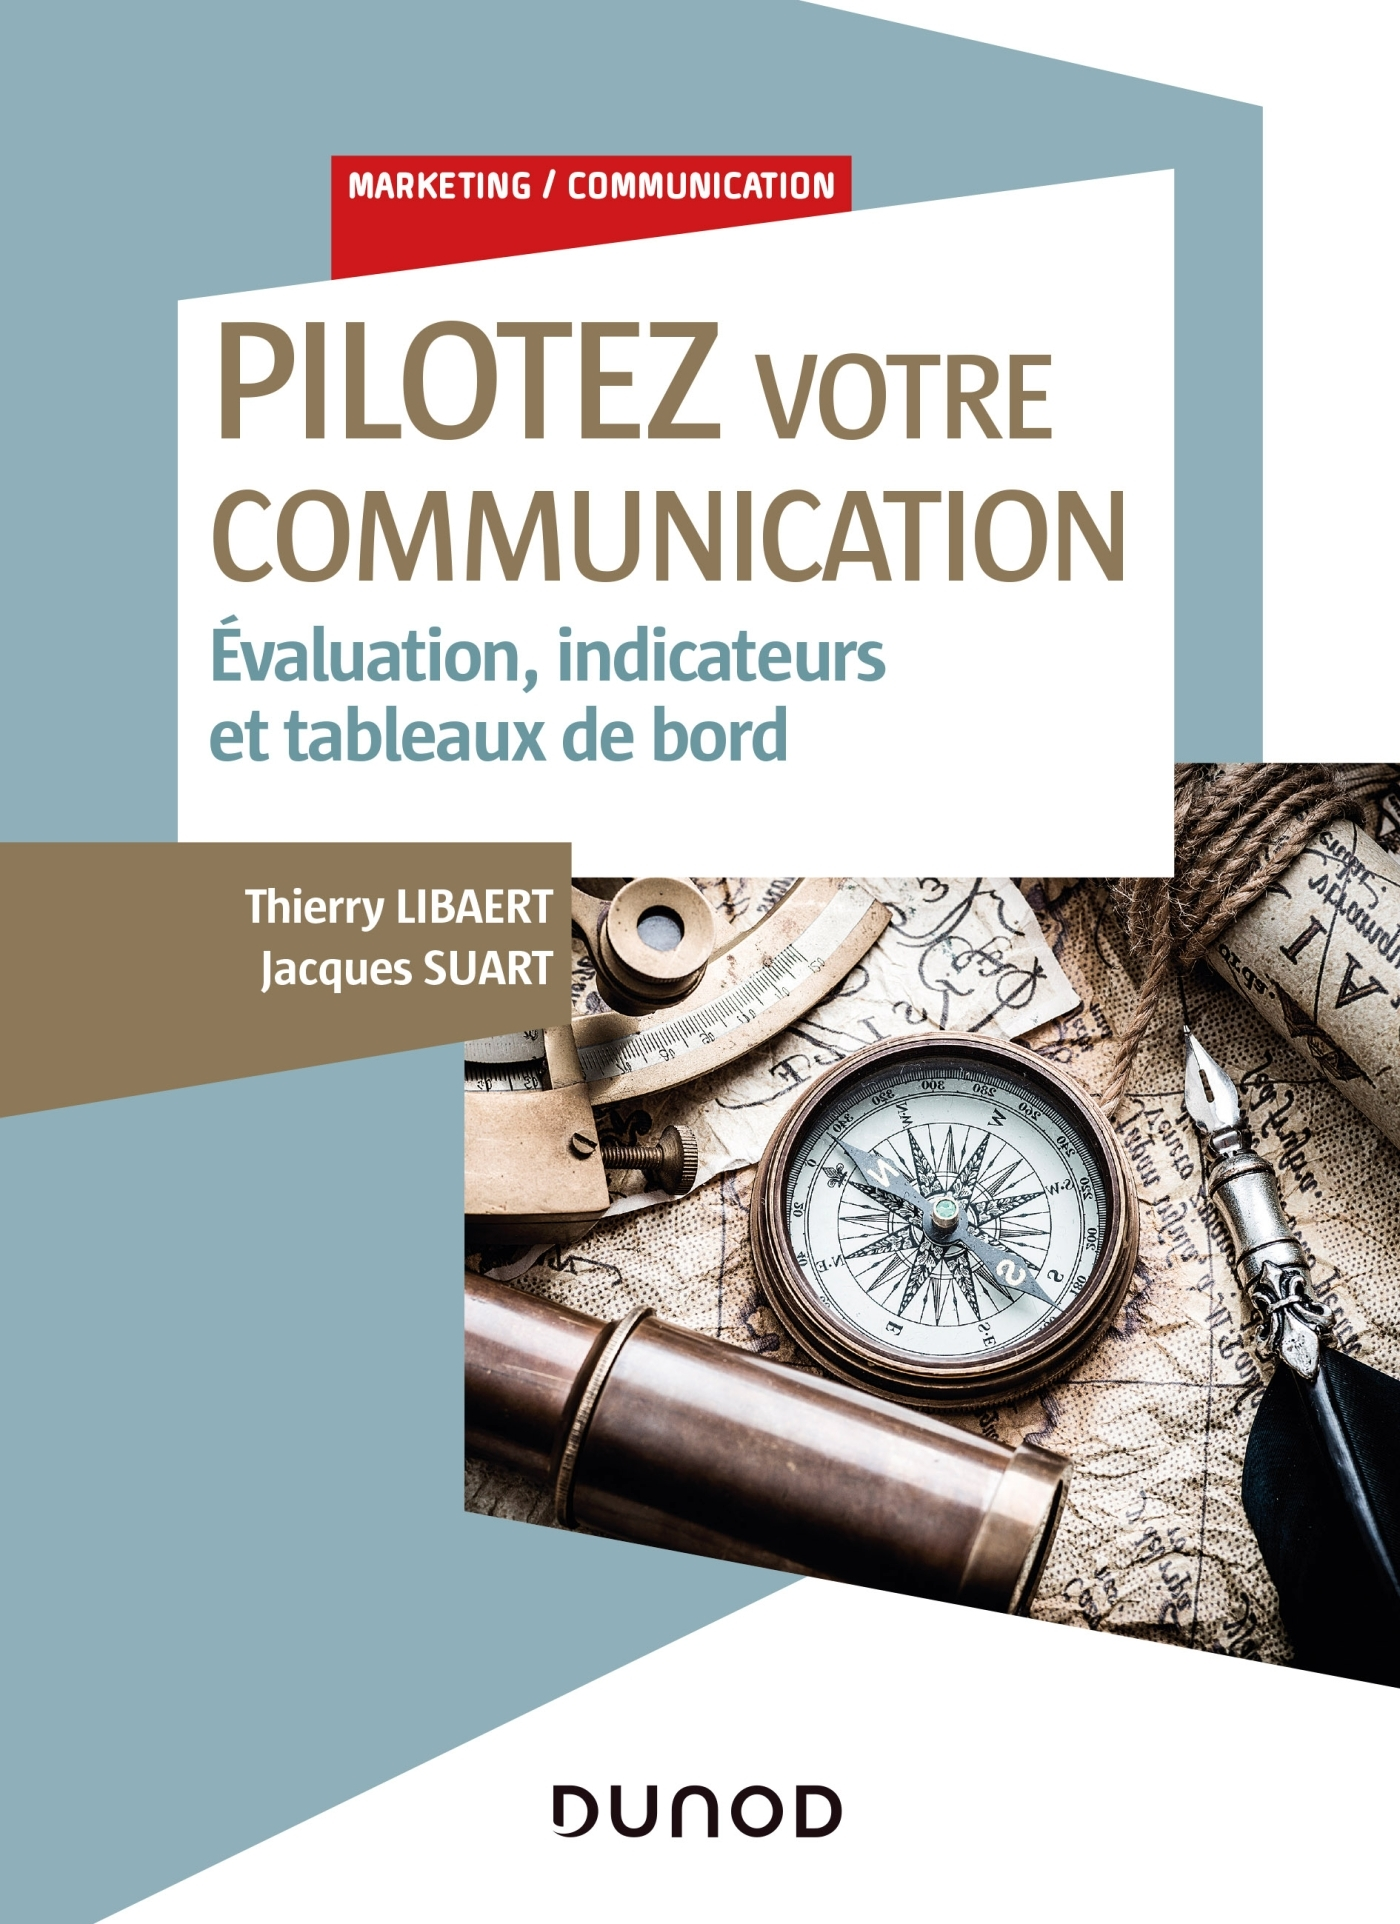 PILOTEZ VOTRE COMMUNICATION - EVALUATION, INDICATEURS ET TABLEAUX DE BORD